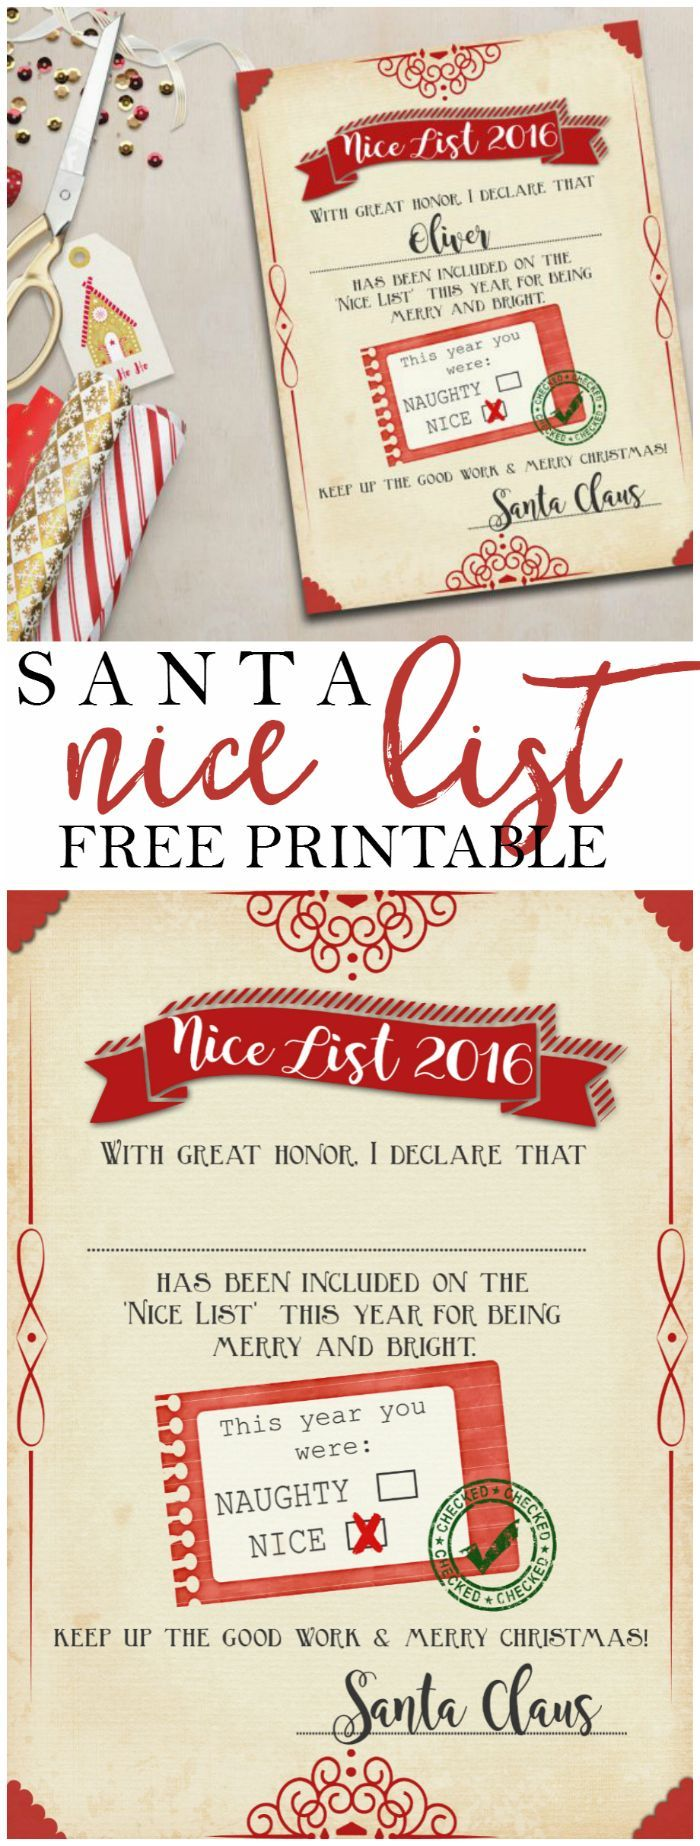 Free santas official nice list certificate printable http free santas official nice list certificate printable httpthedailygoodiebag201411free santas official nice list certificate pinterest nice yadclub Choice Image